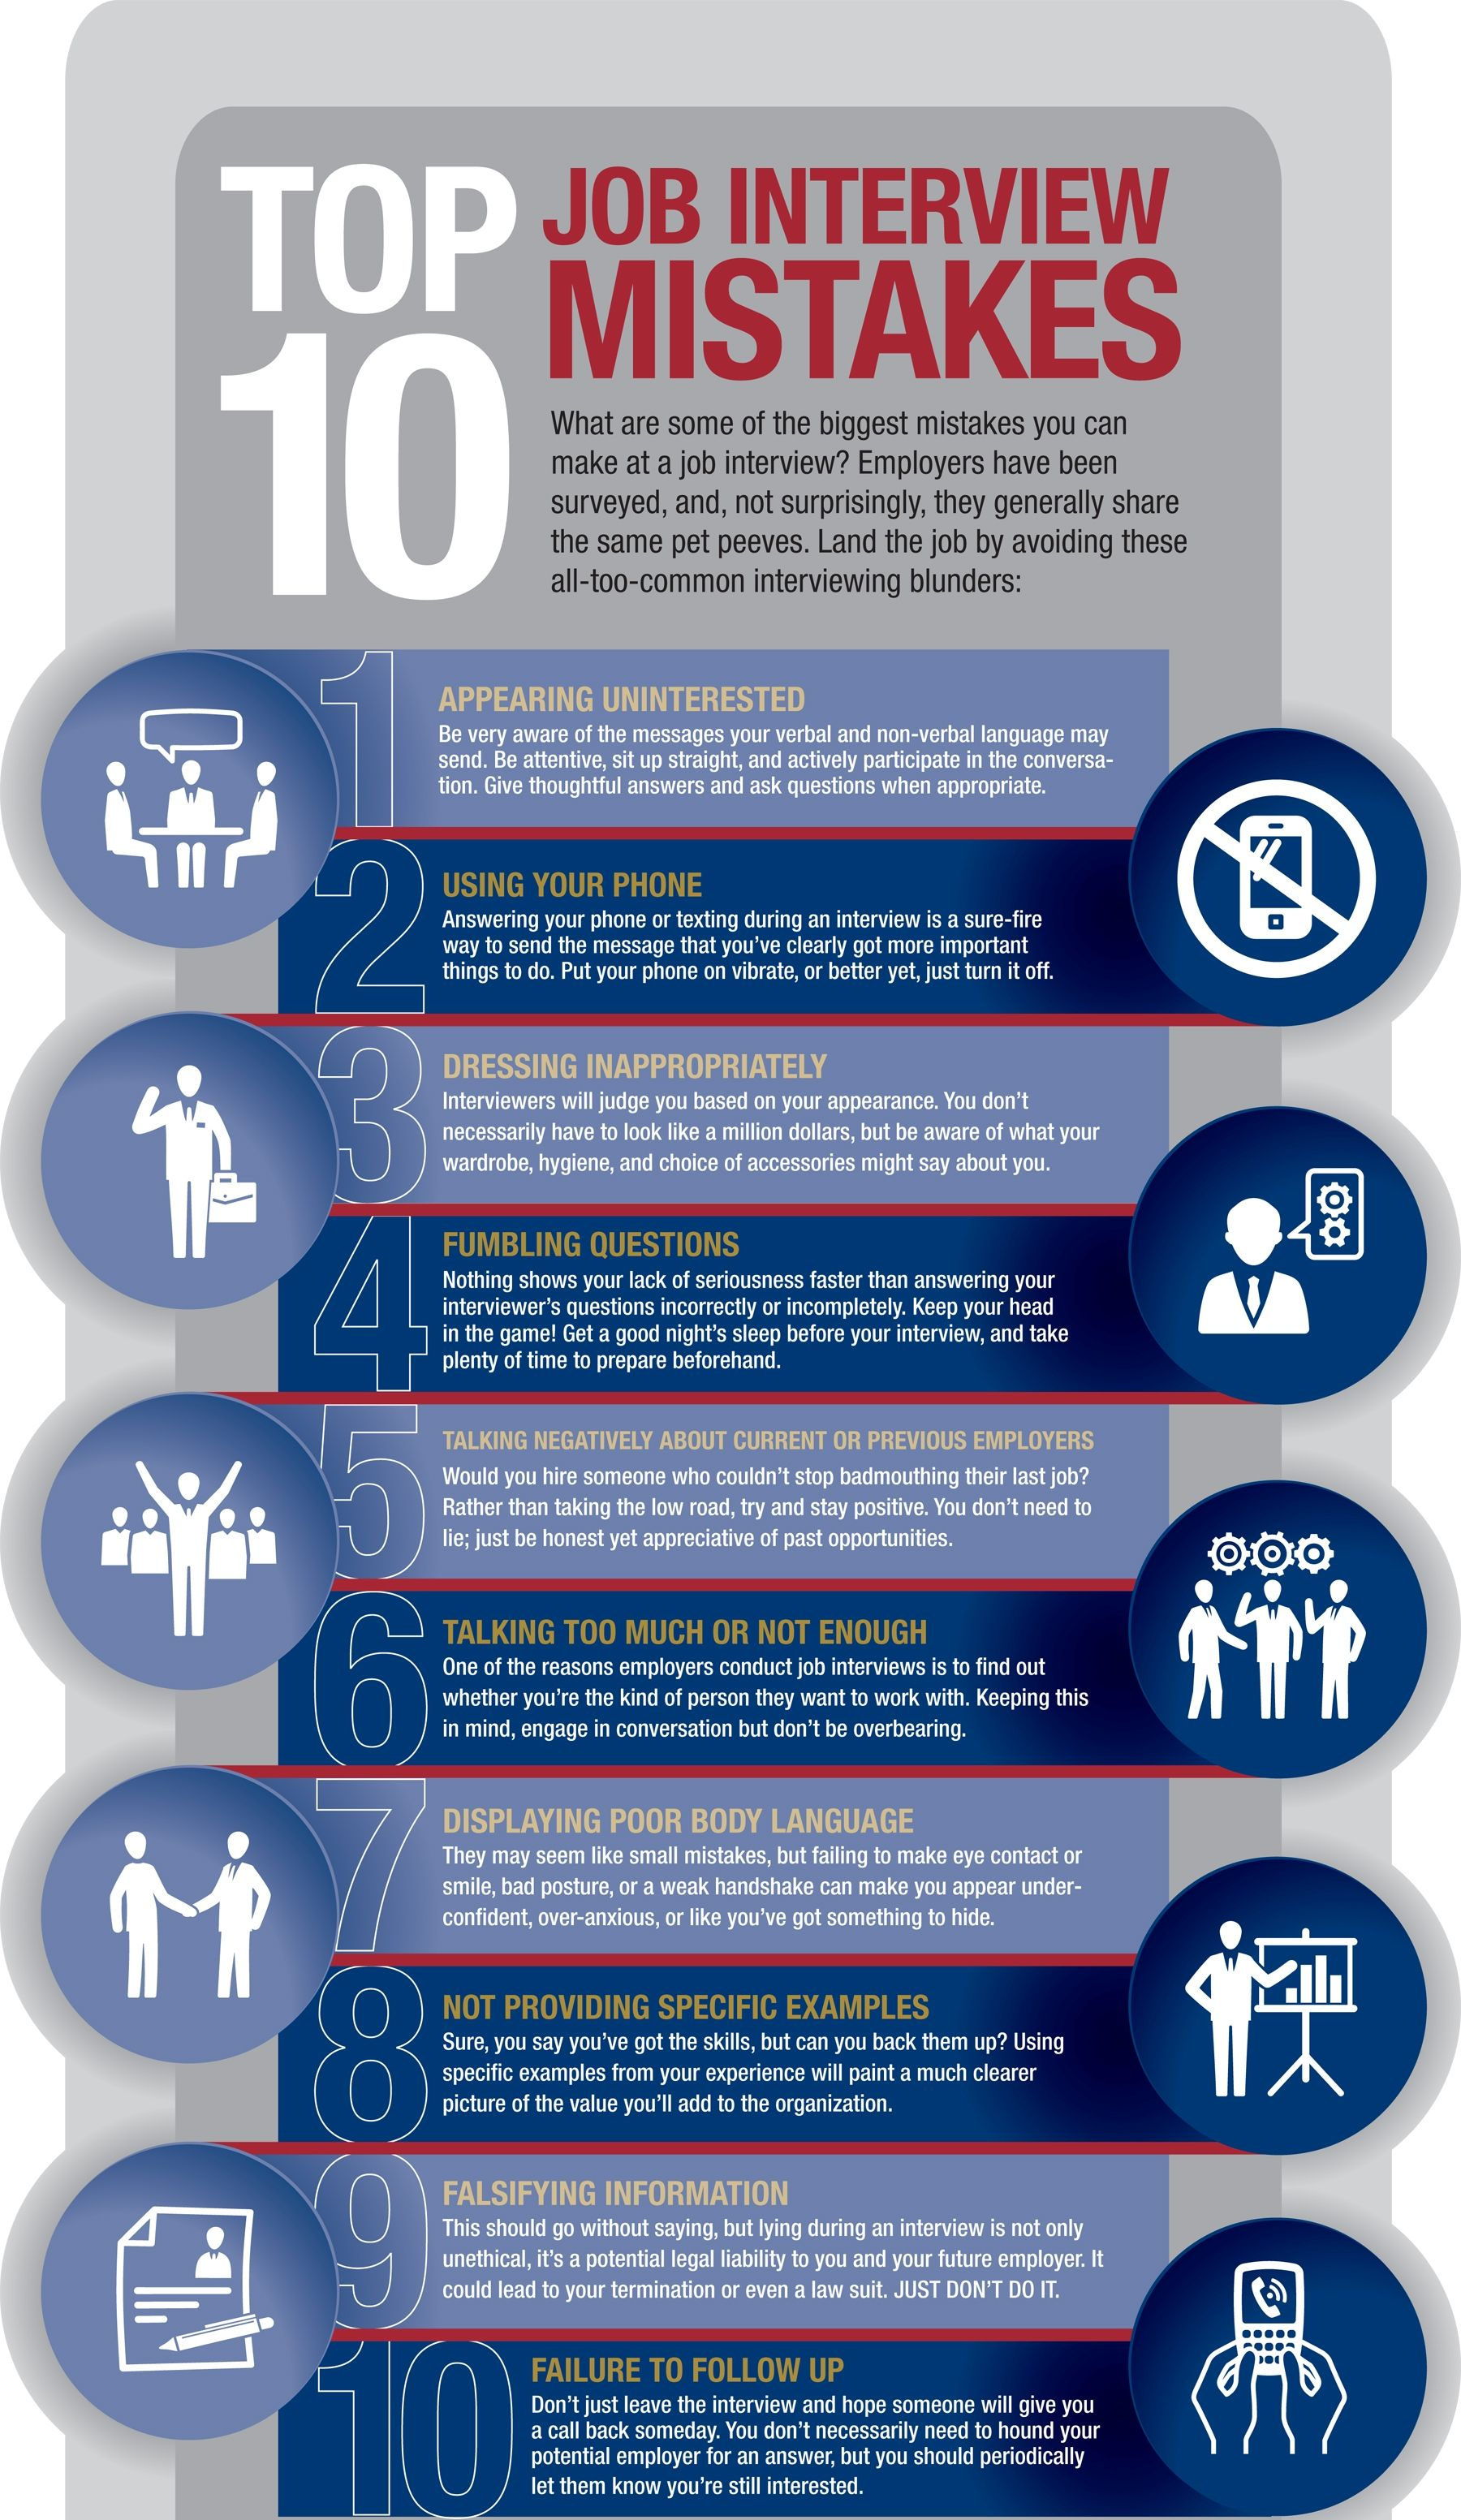 Top 10 Job Interview Mistakes Interview Tips Advice Pinterest